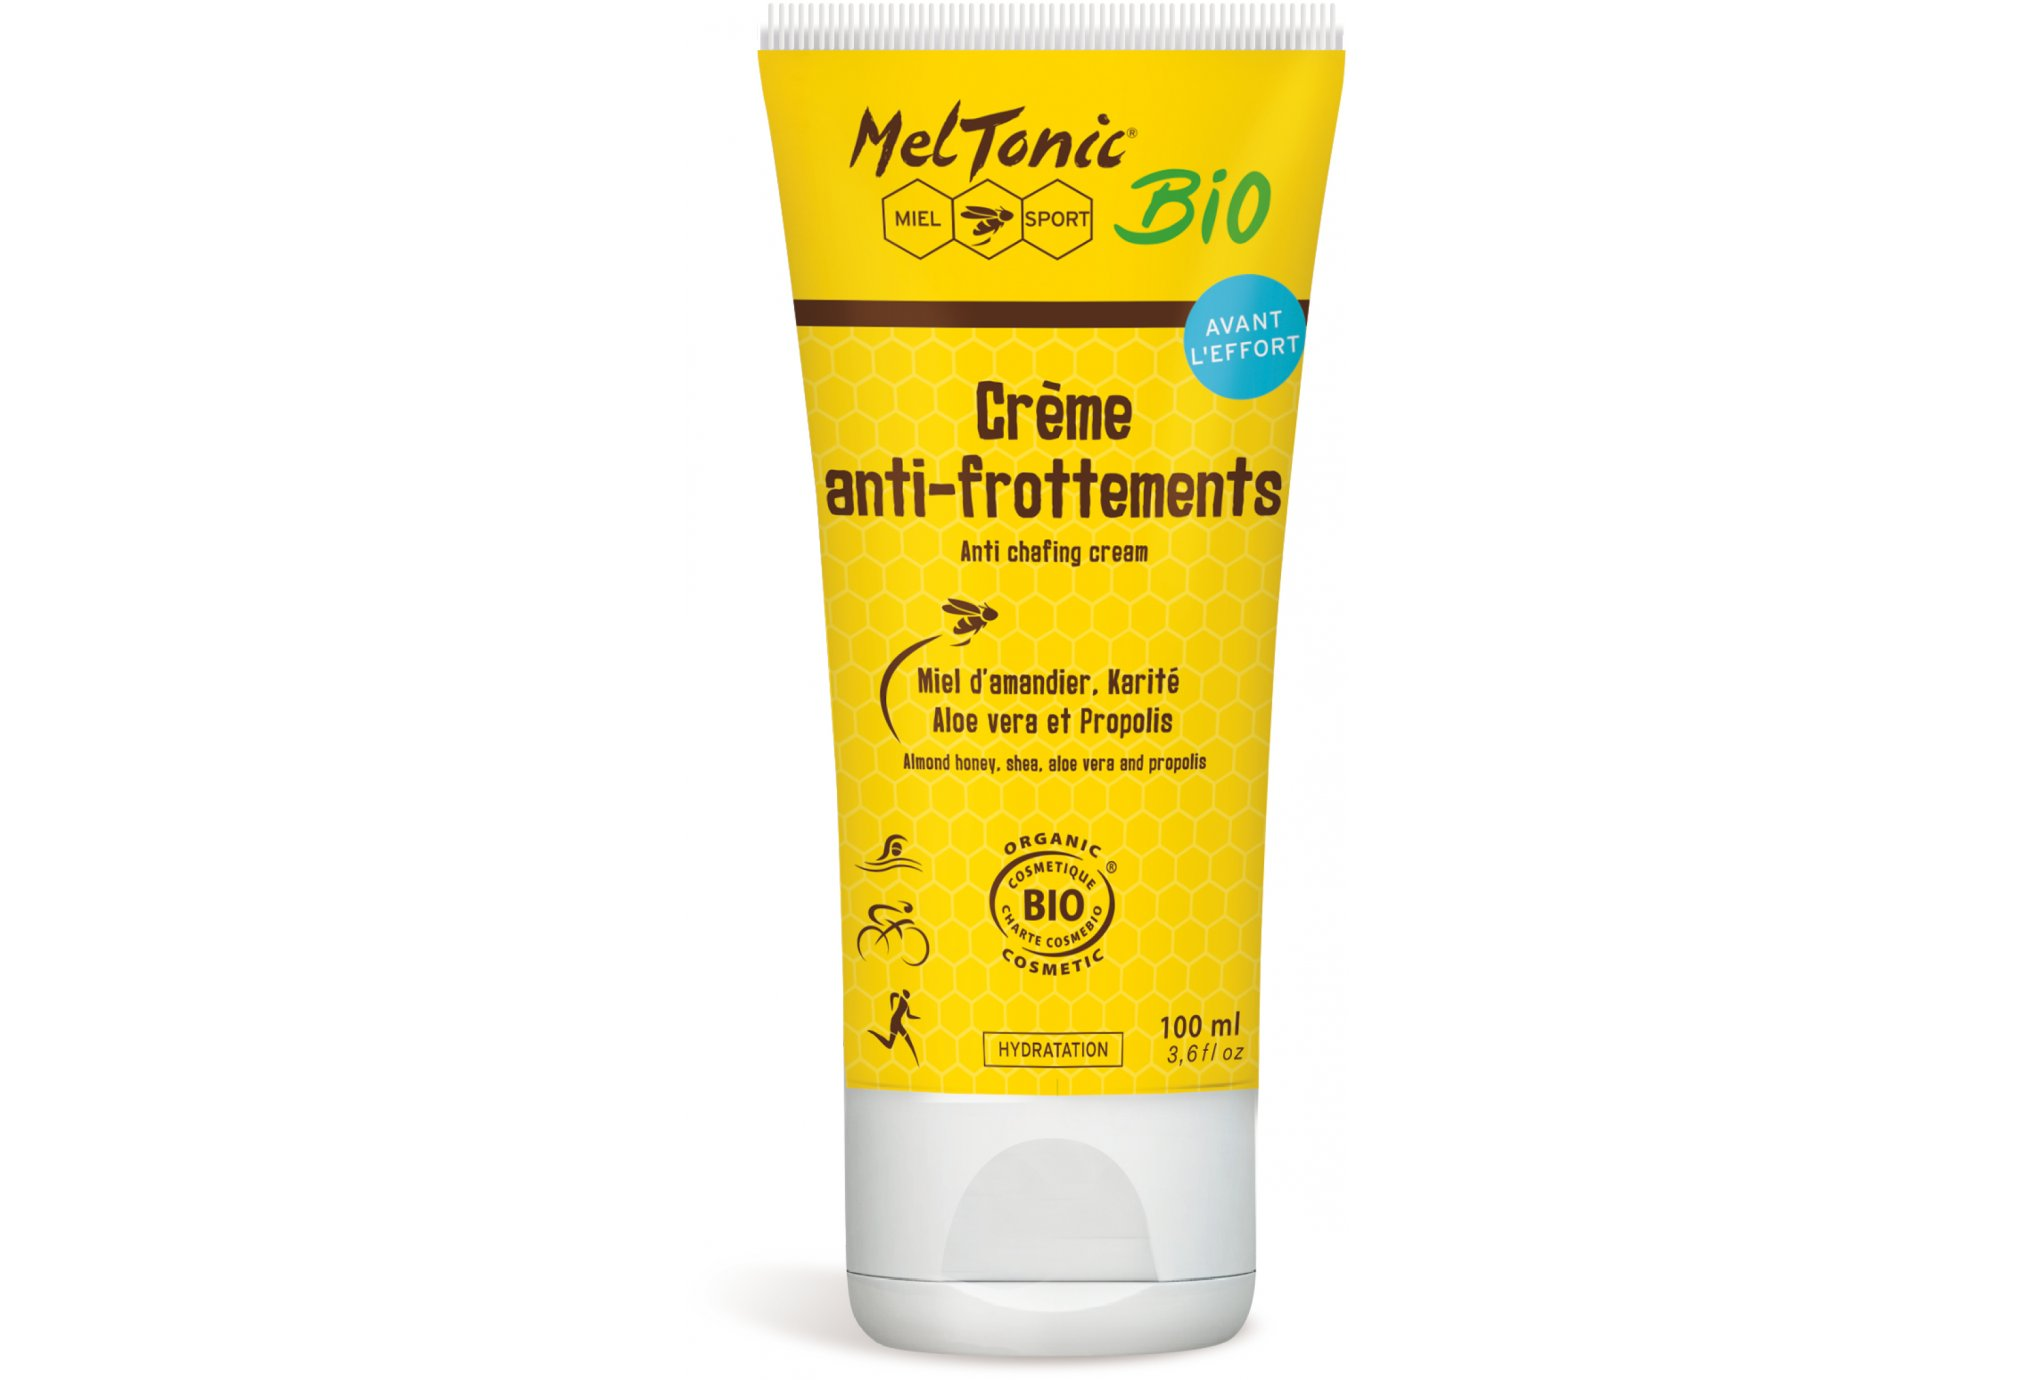 Meltonic Crème anti-Frottement bio protection musculaire & articulaire